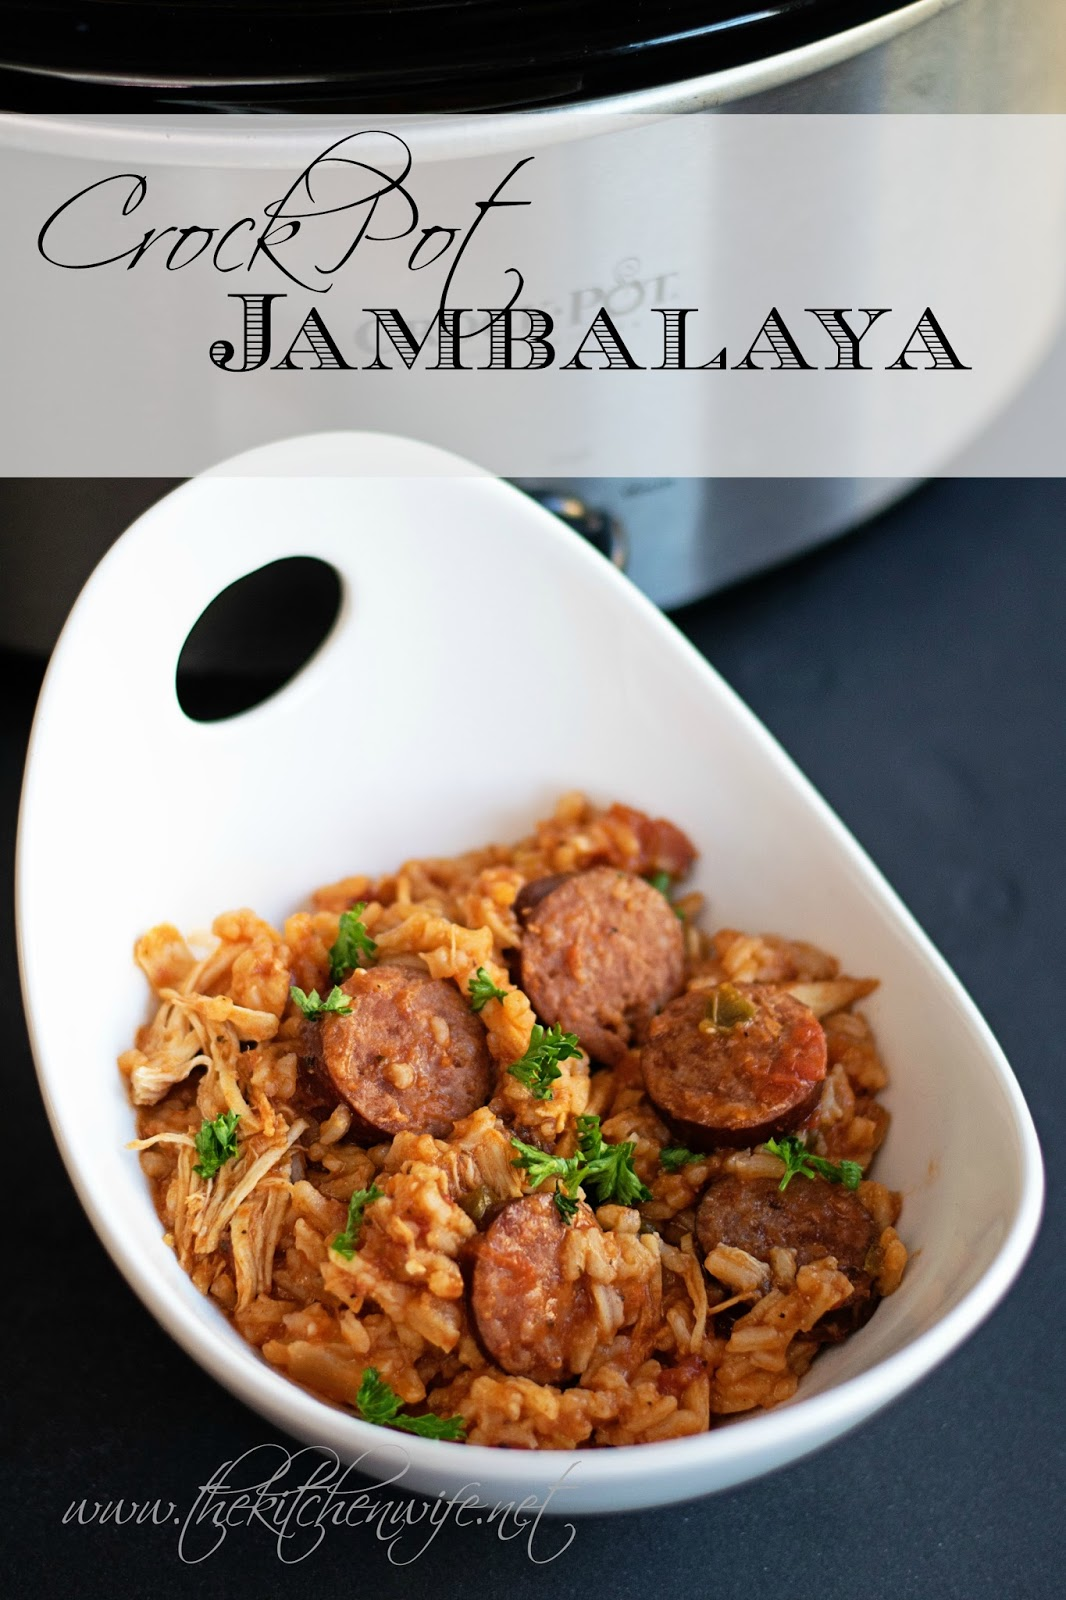 #Recipe : Crock Pot Jambalaya